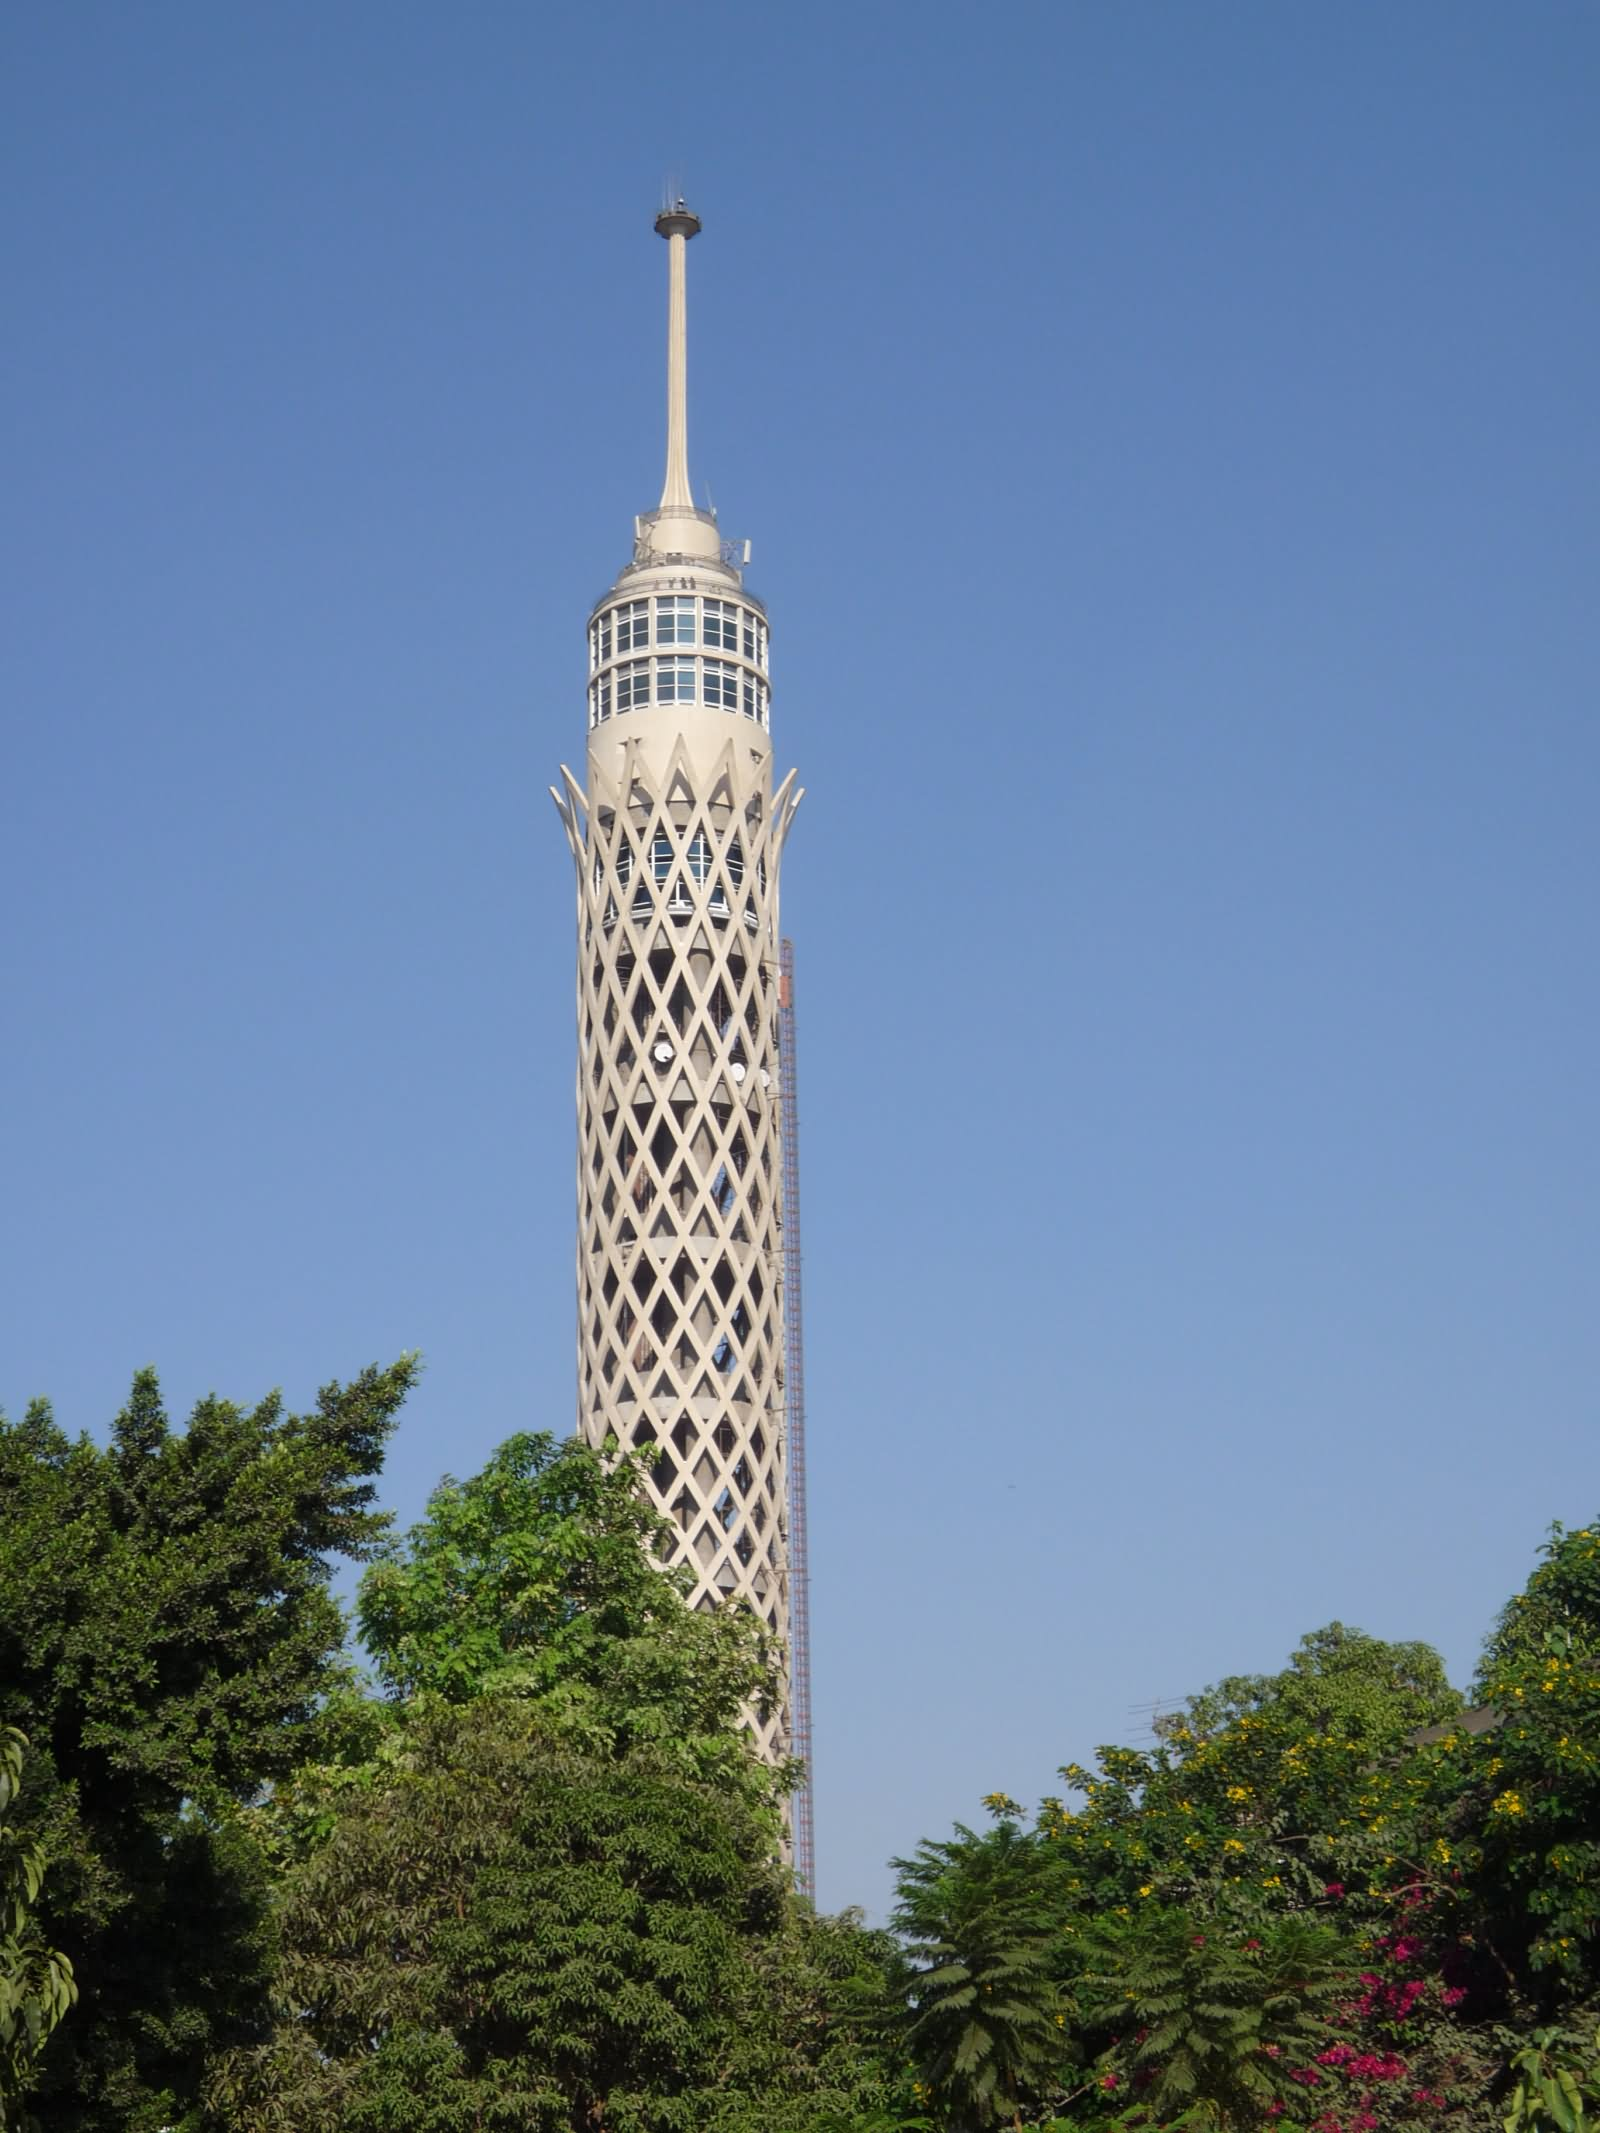 The Cairo Tower